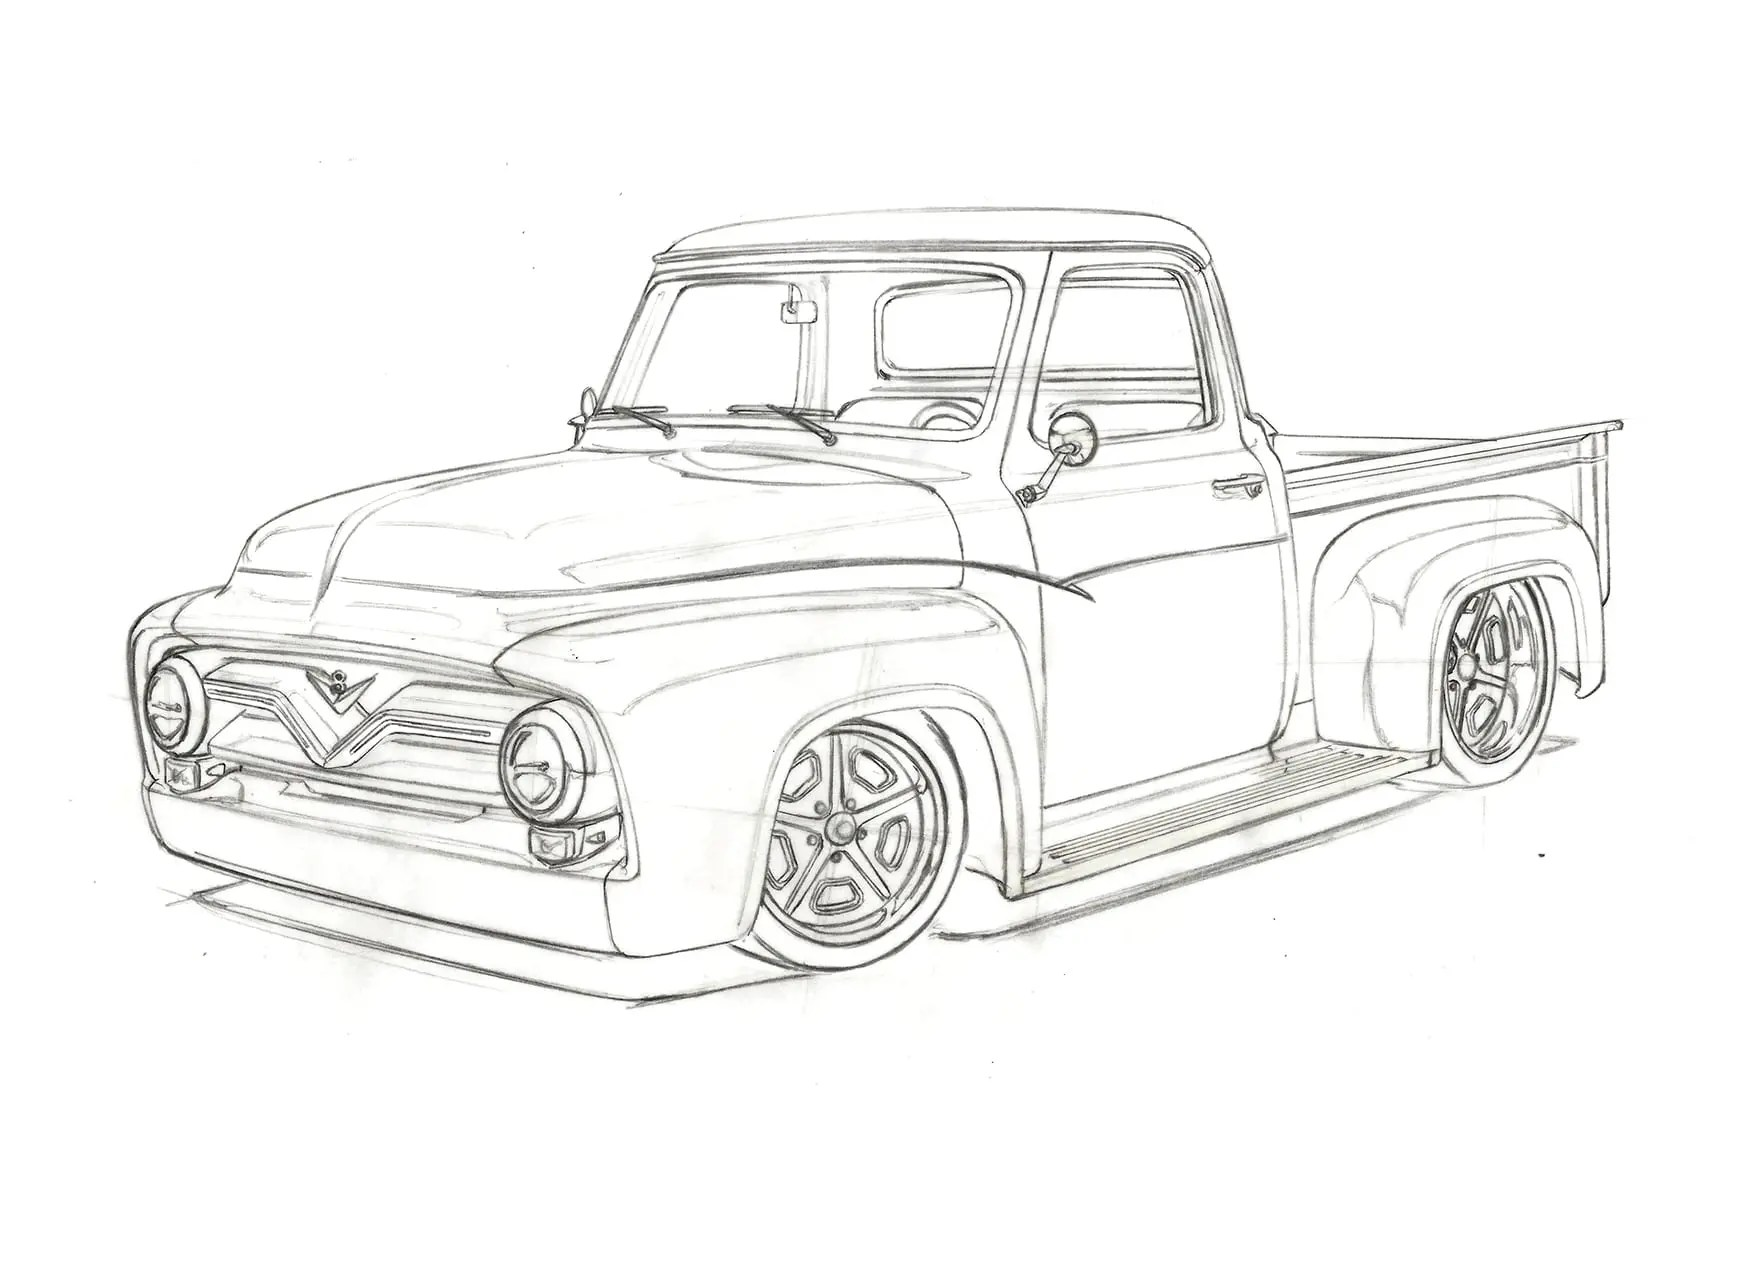 Revised F100 Sketch 1